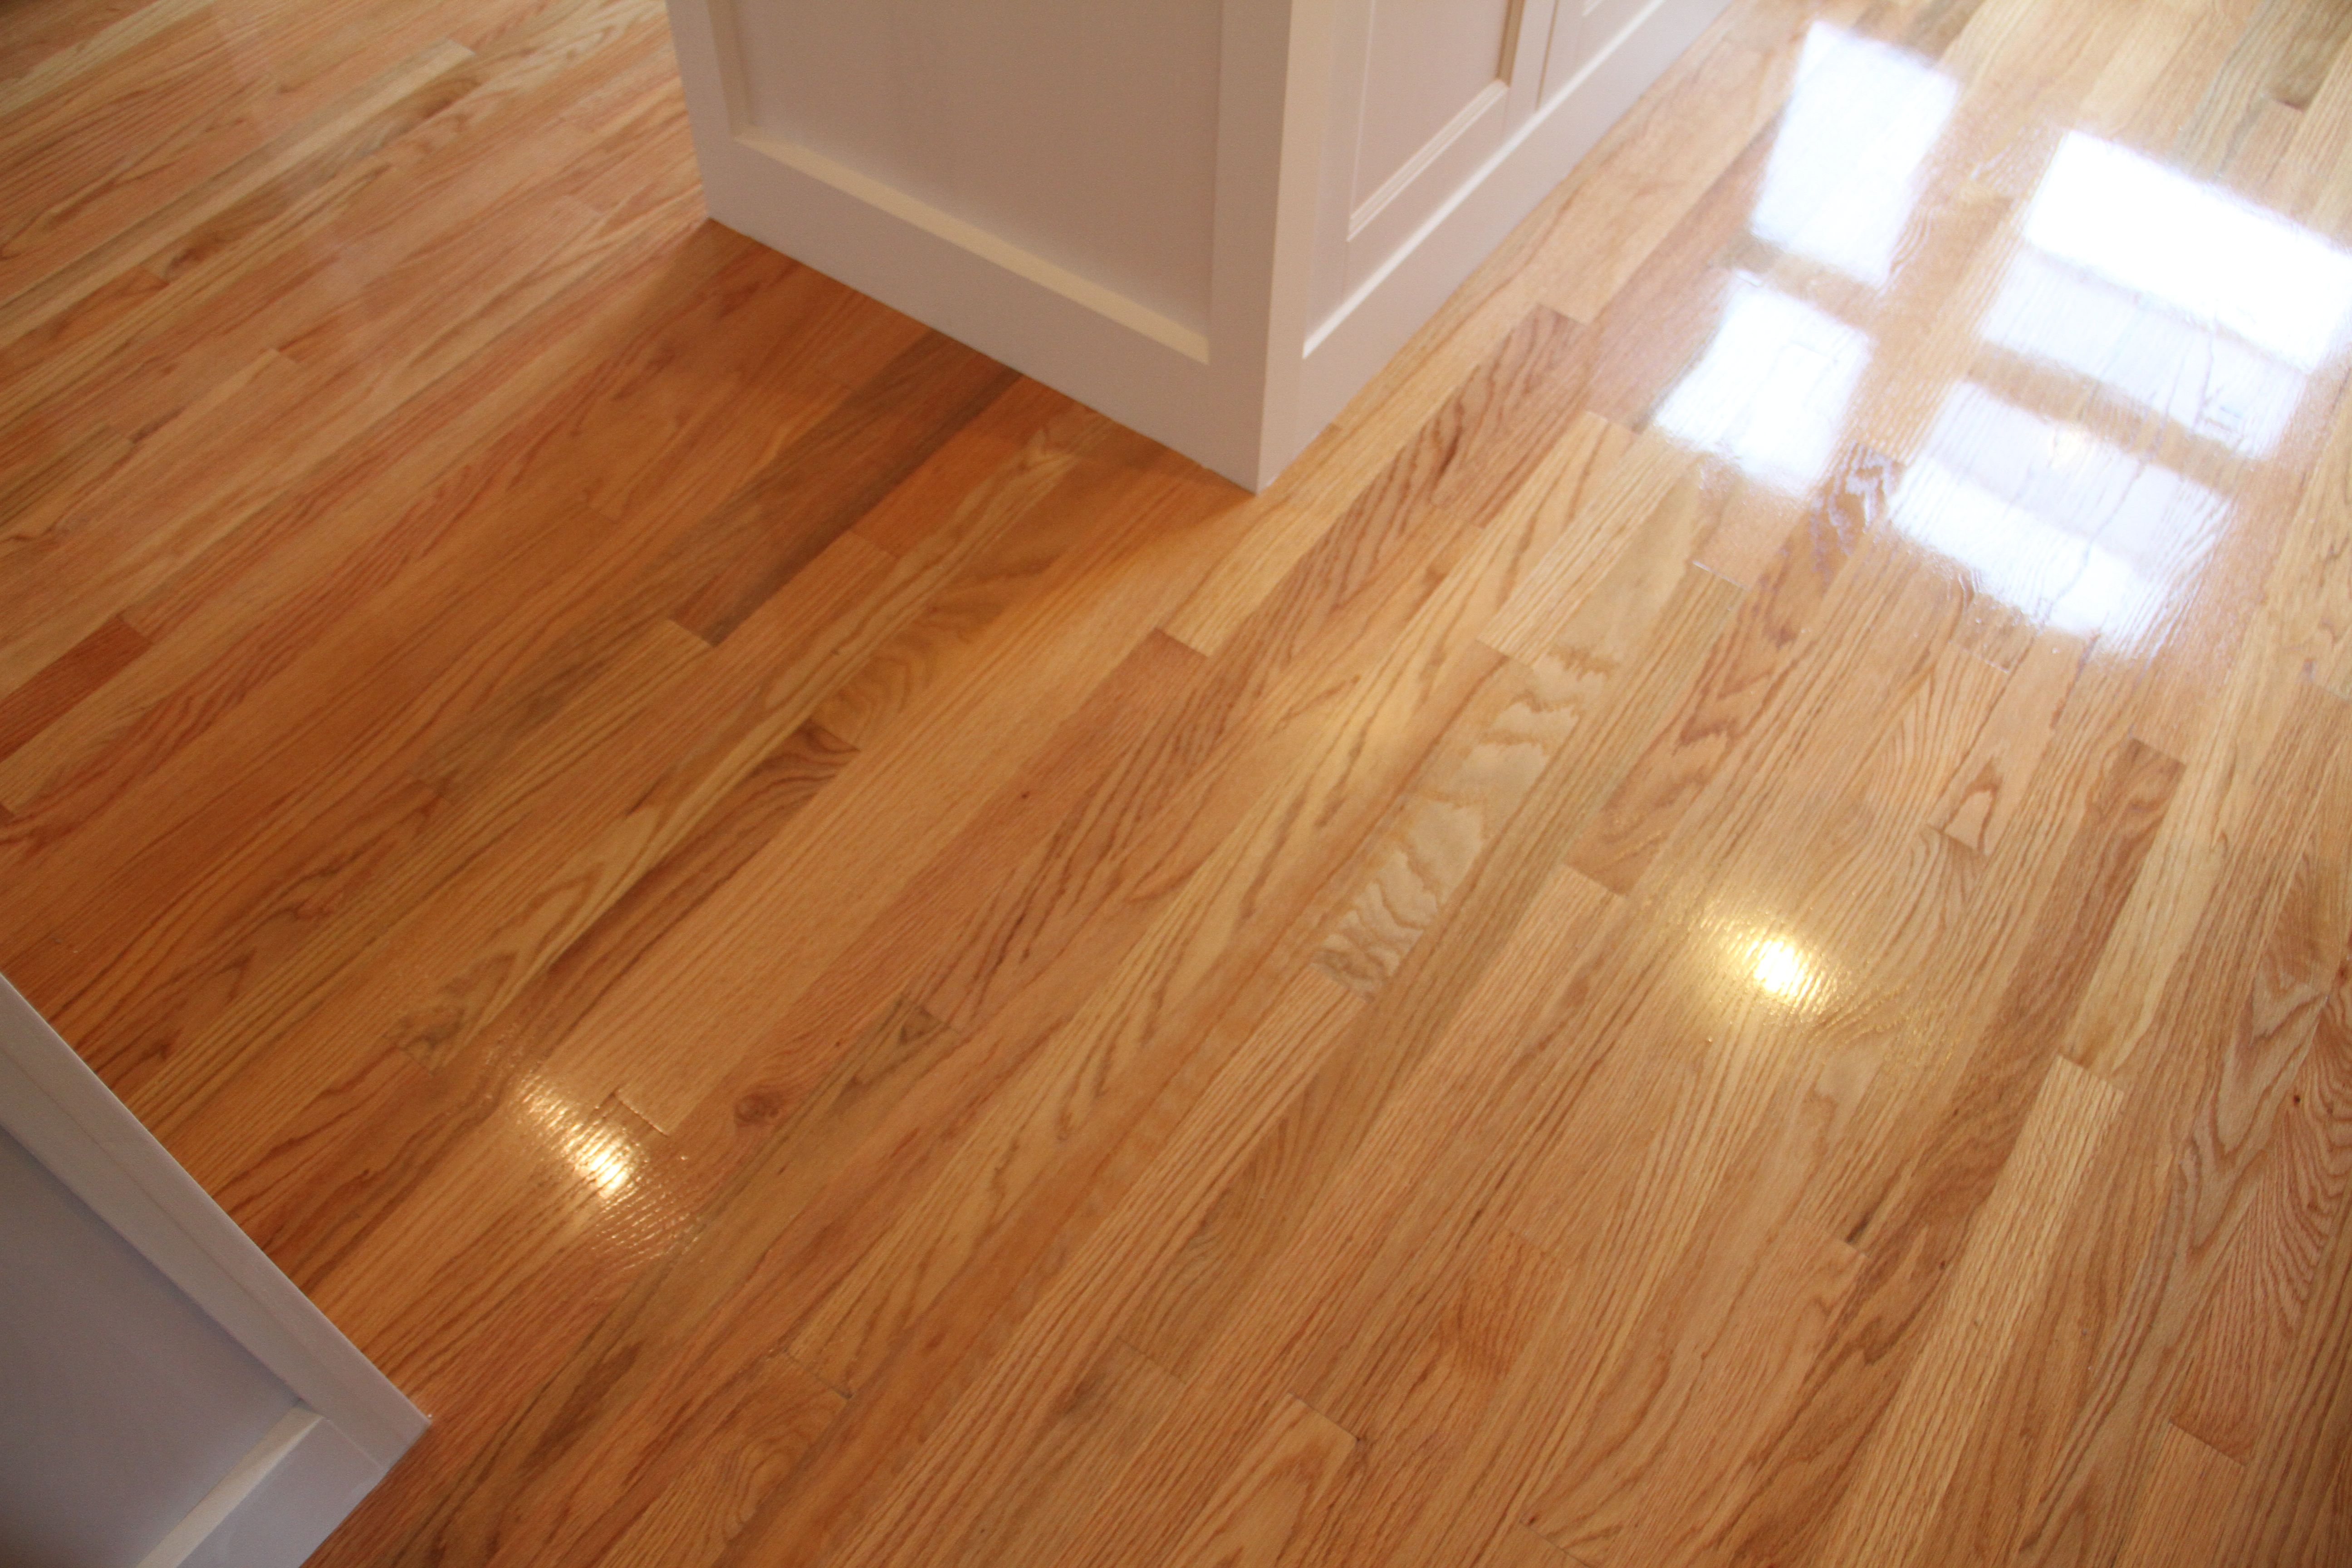 And the floors. Who could forget the floors? Glorious, shiny, and not completely cured. I have some work to do before the plumbers come, I can tell you that.